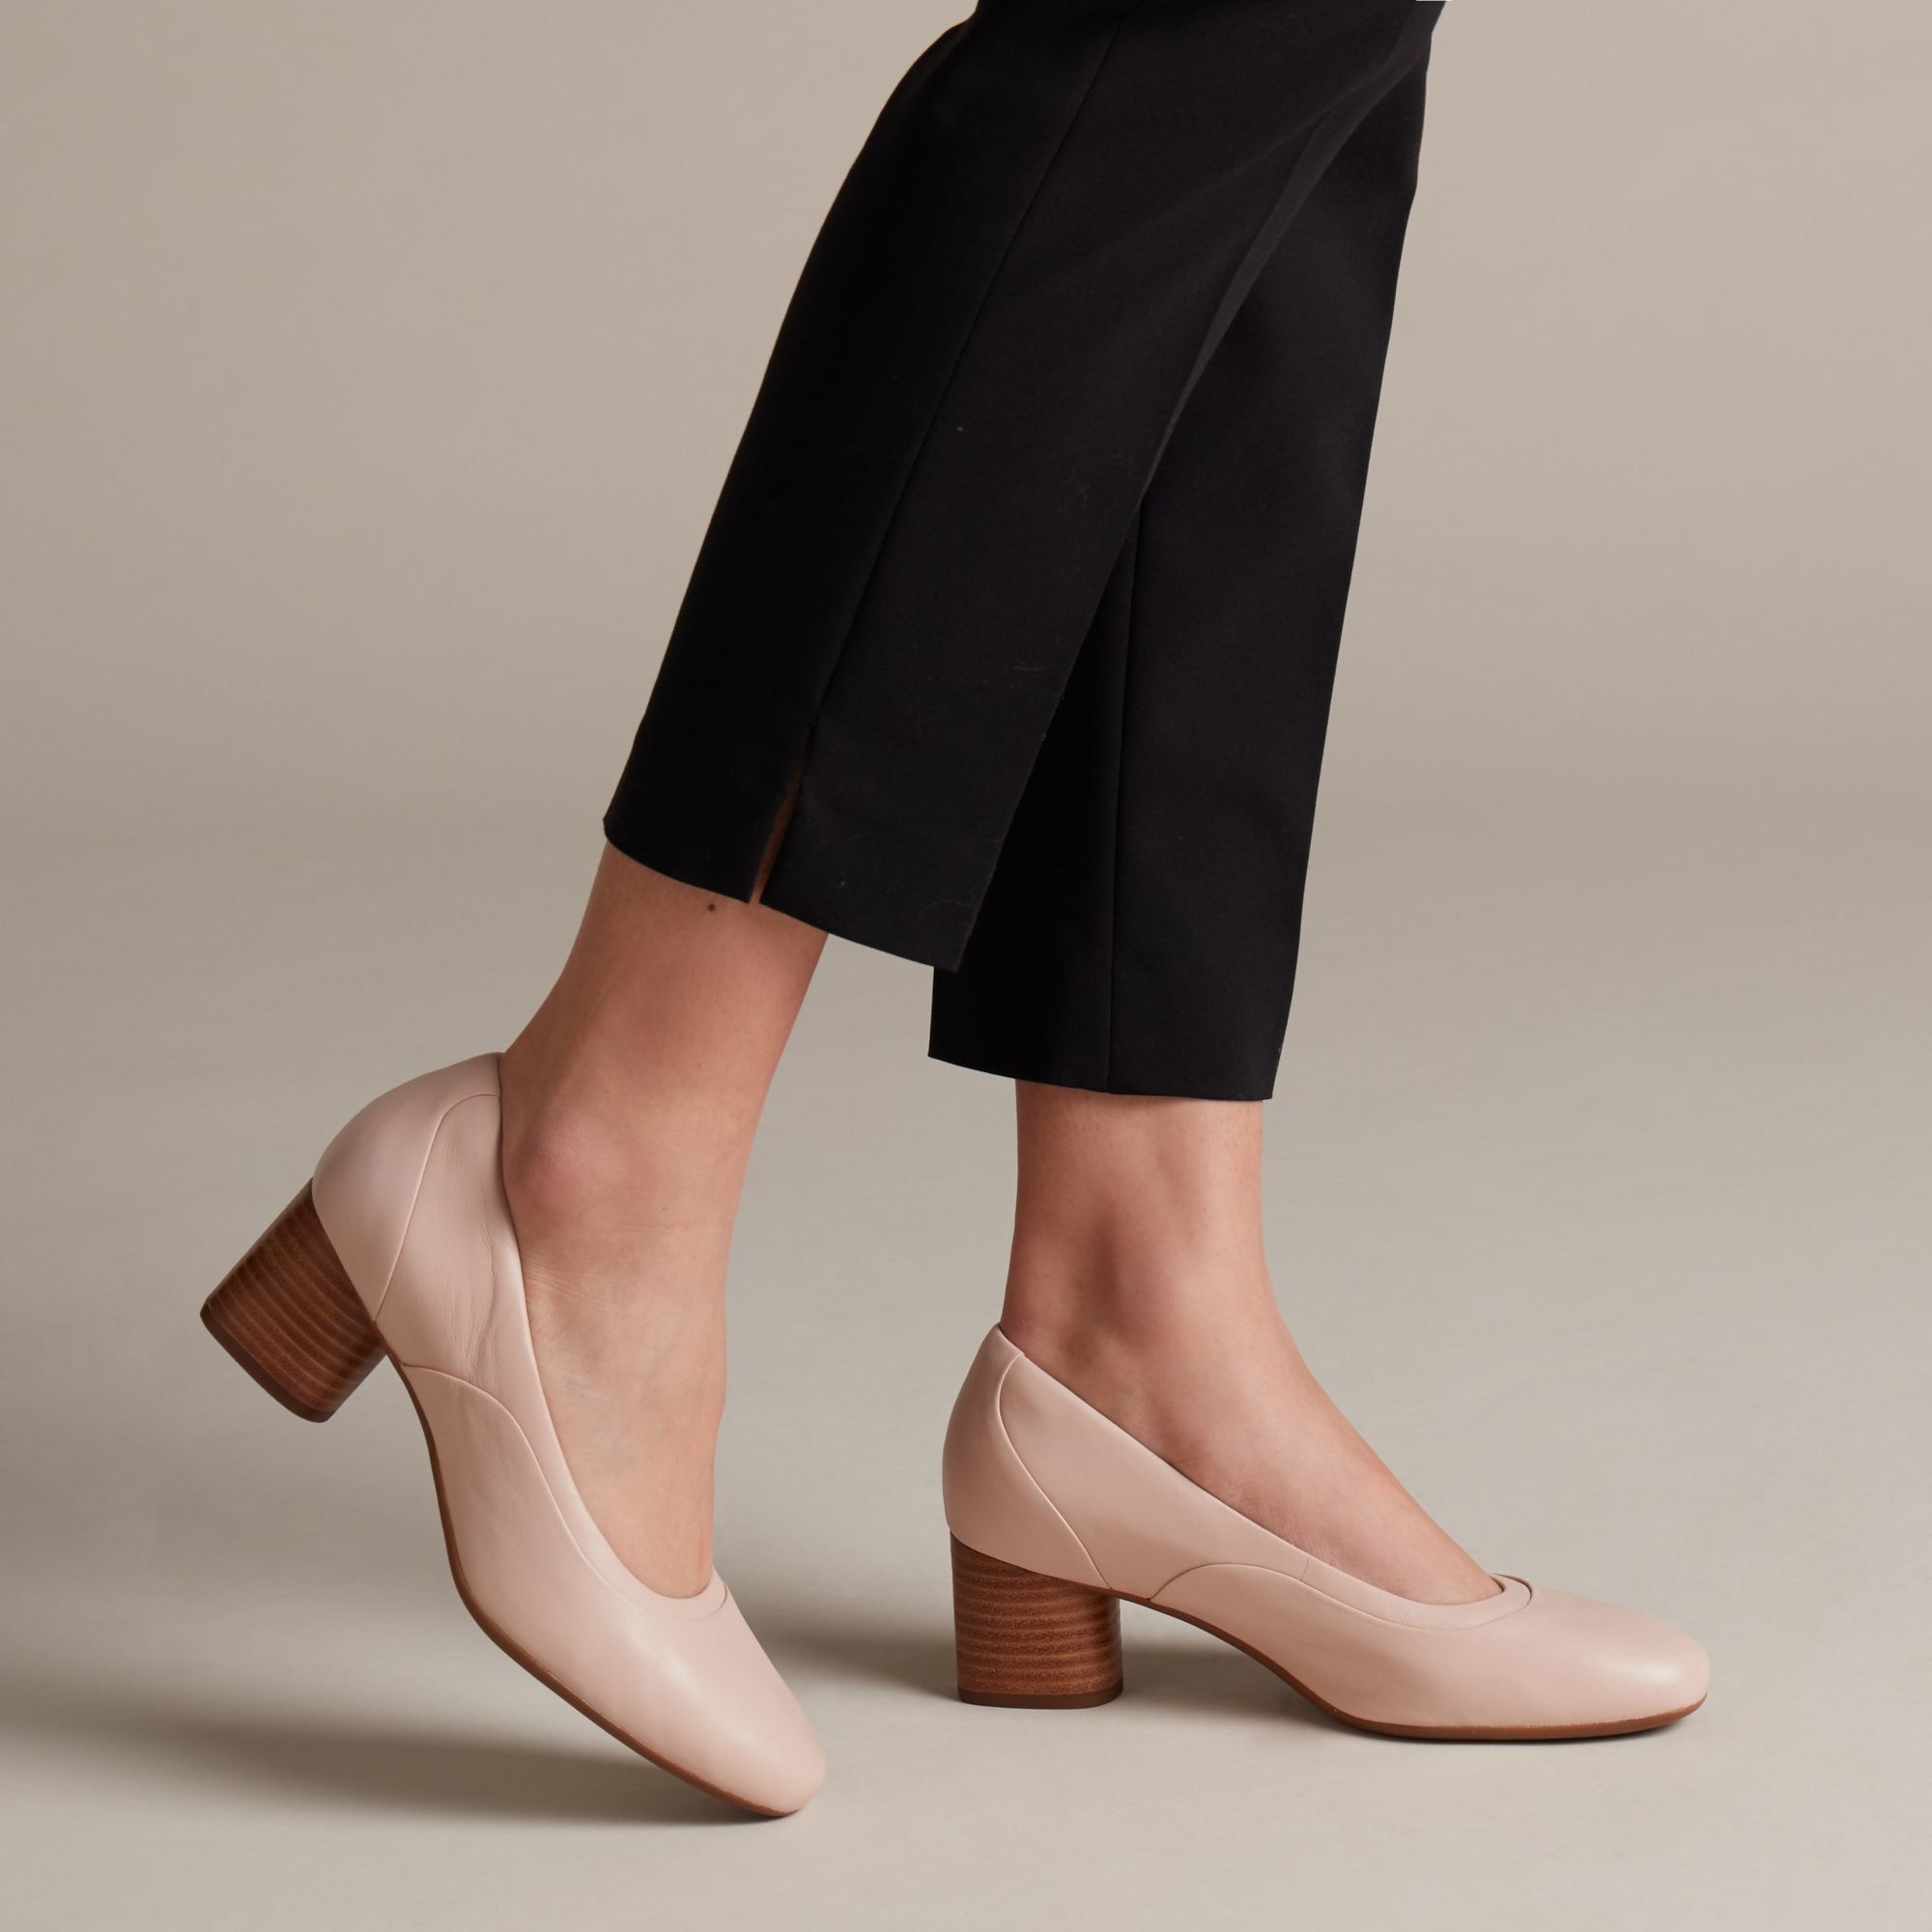 pink pumps with rounded wooden heels